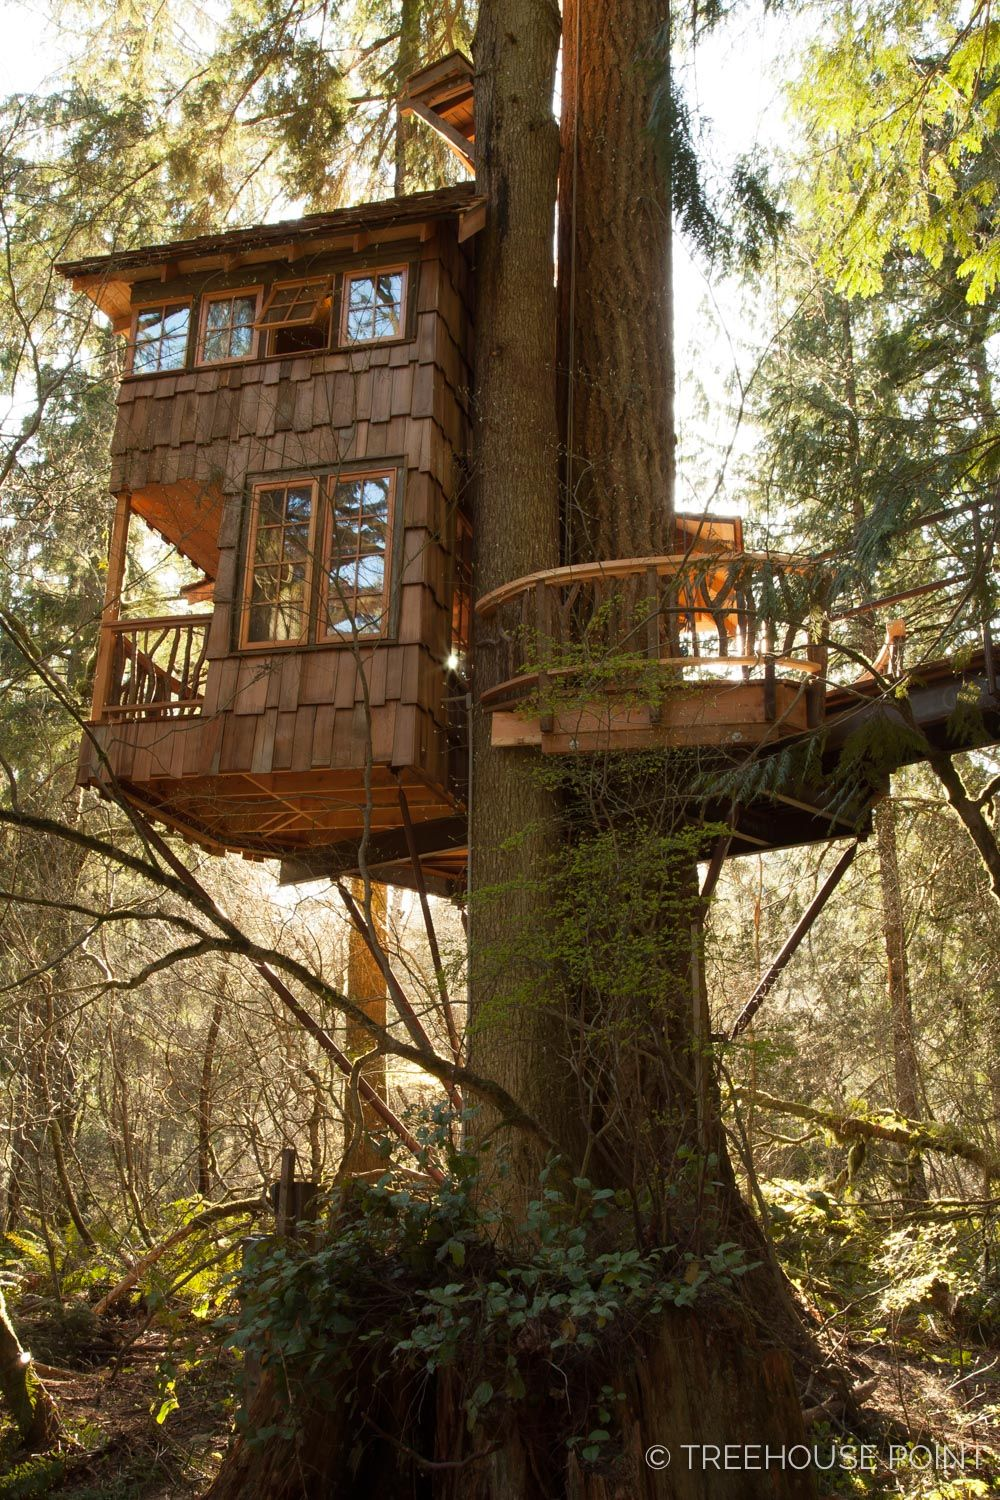 The Burl at TreeHouse Point — Nelson Treehouse